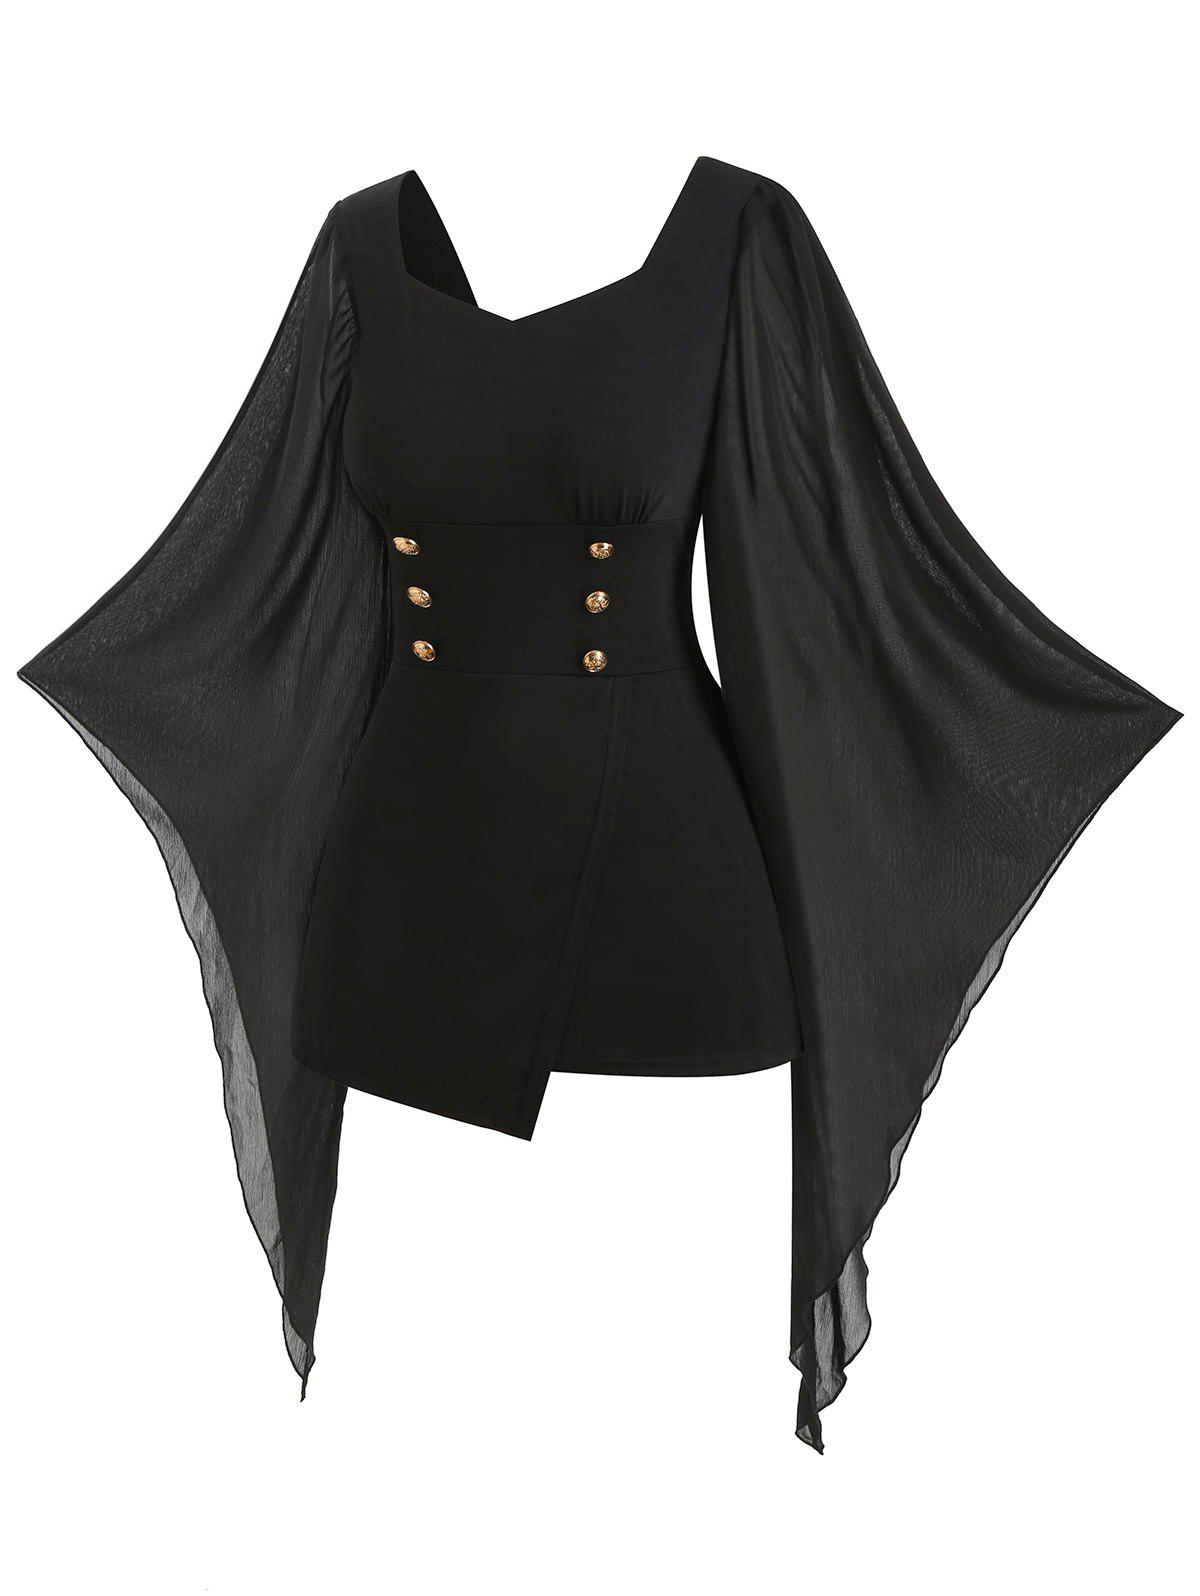 Plus Size Butterfly Sleeve Mock Button Asymmetric T-shirt - BLACK 5X